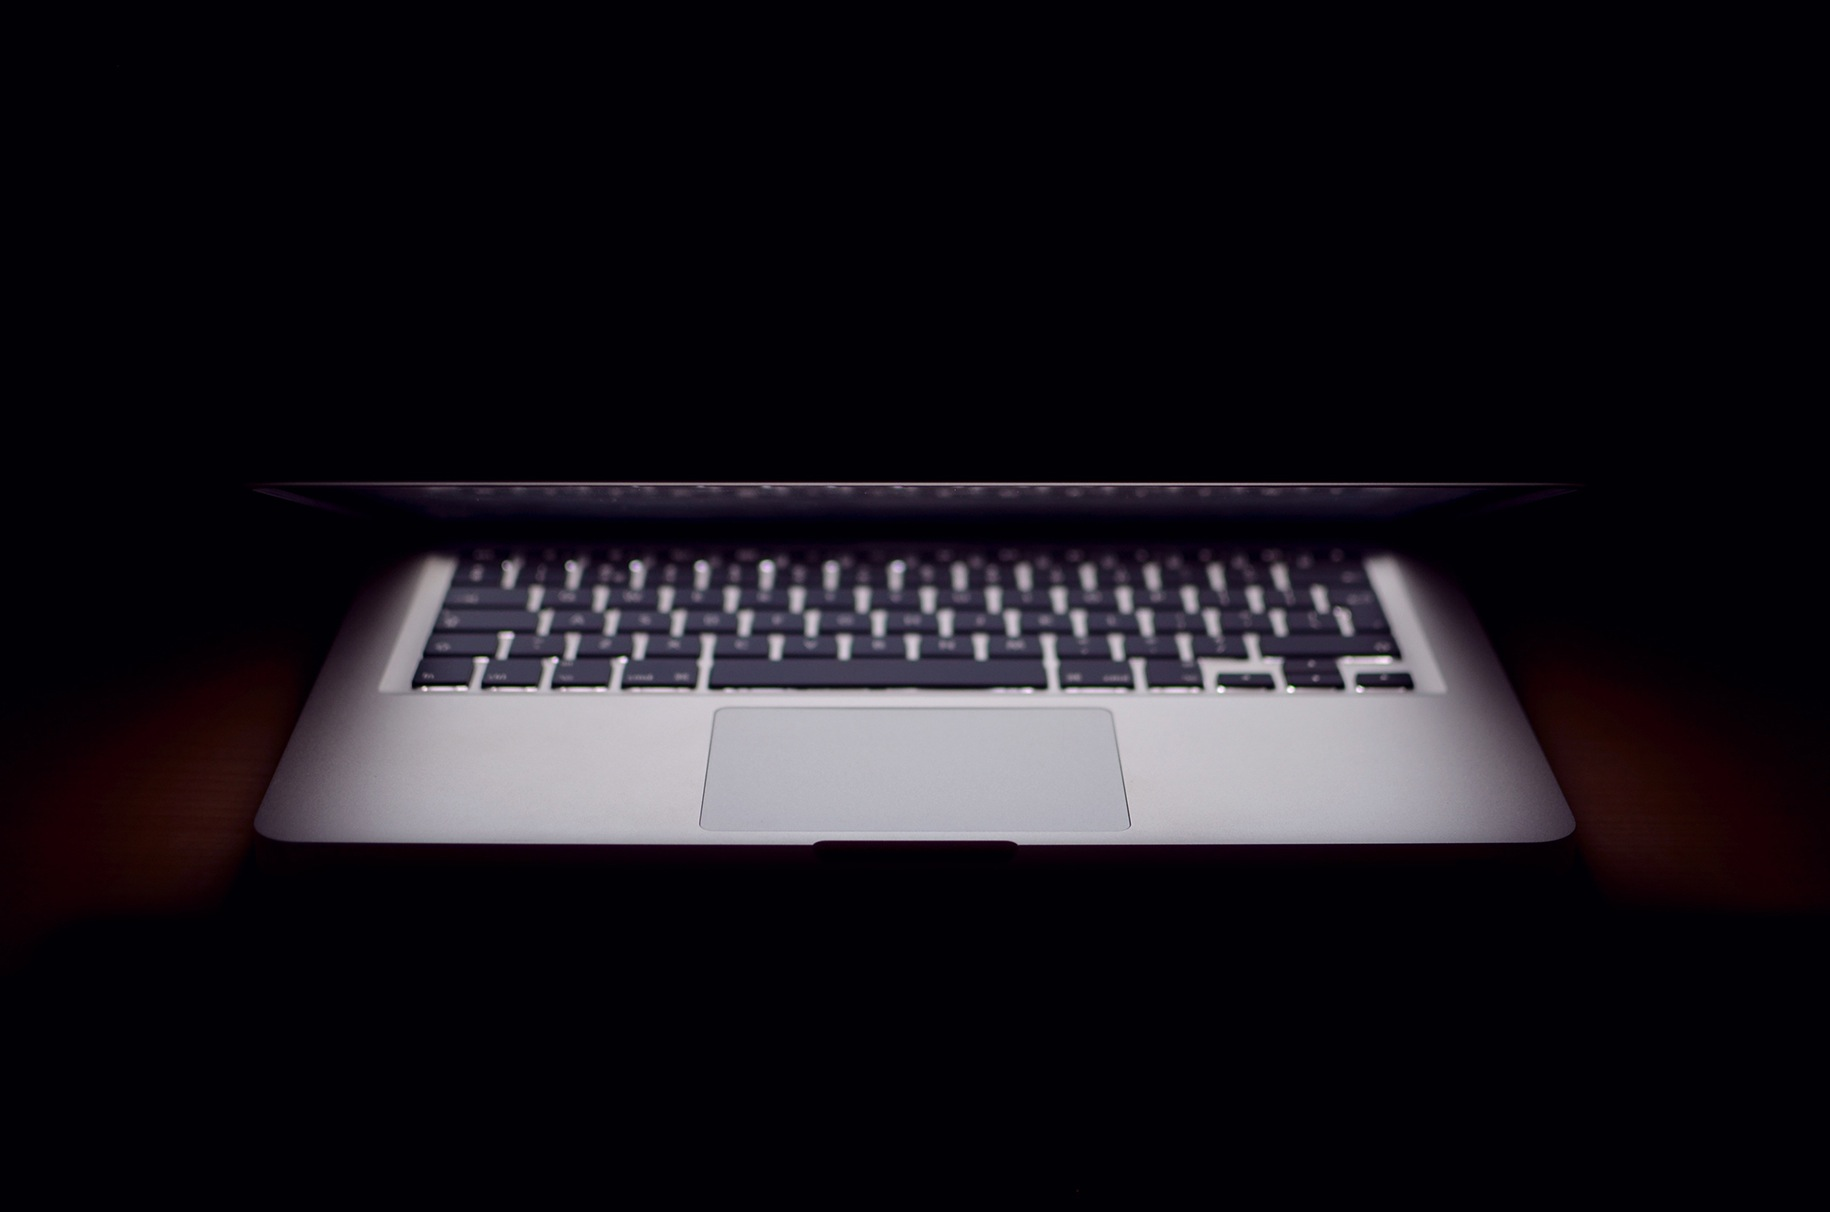 Laptop in the dark with an almost closed lid